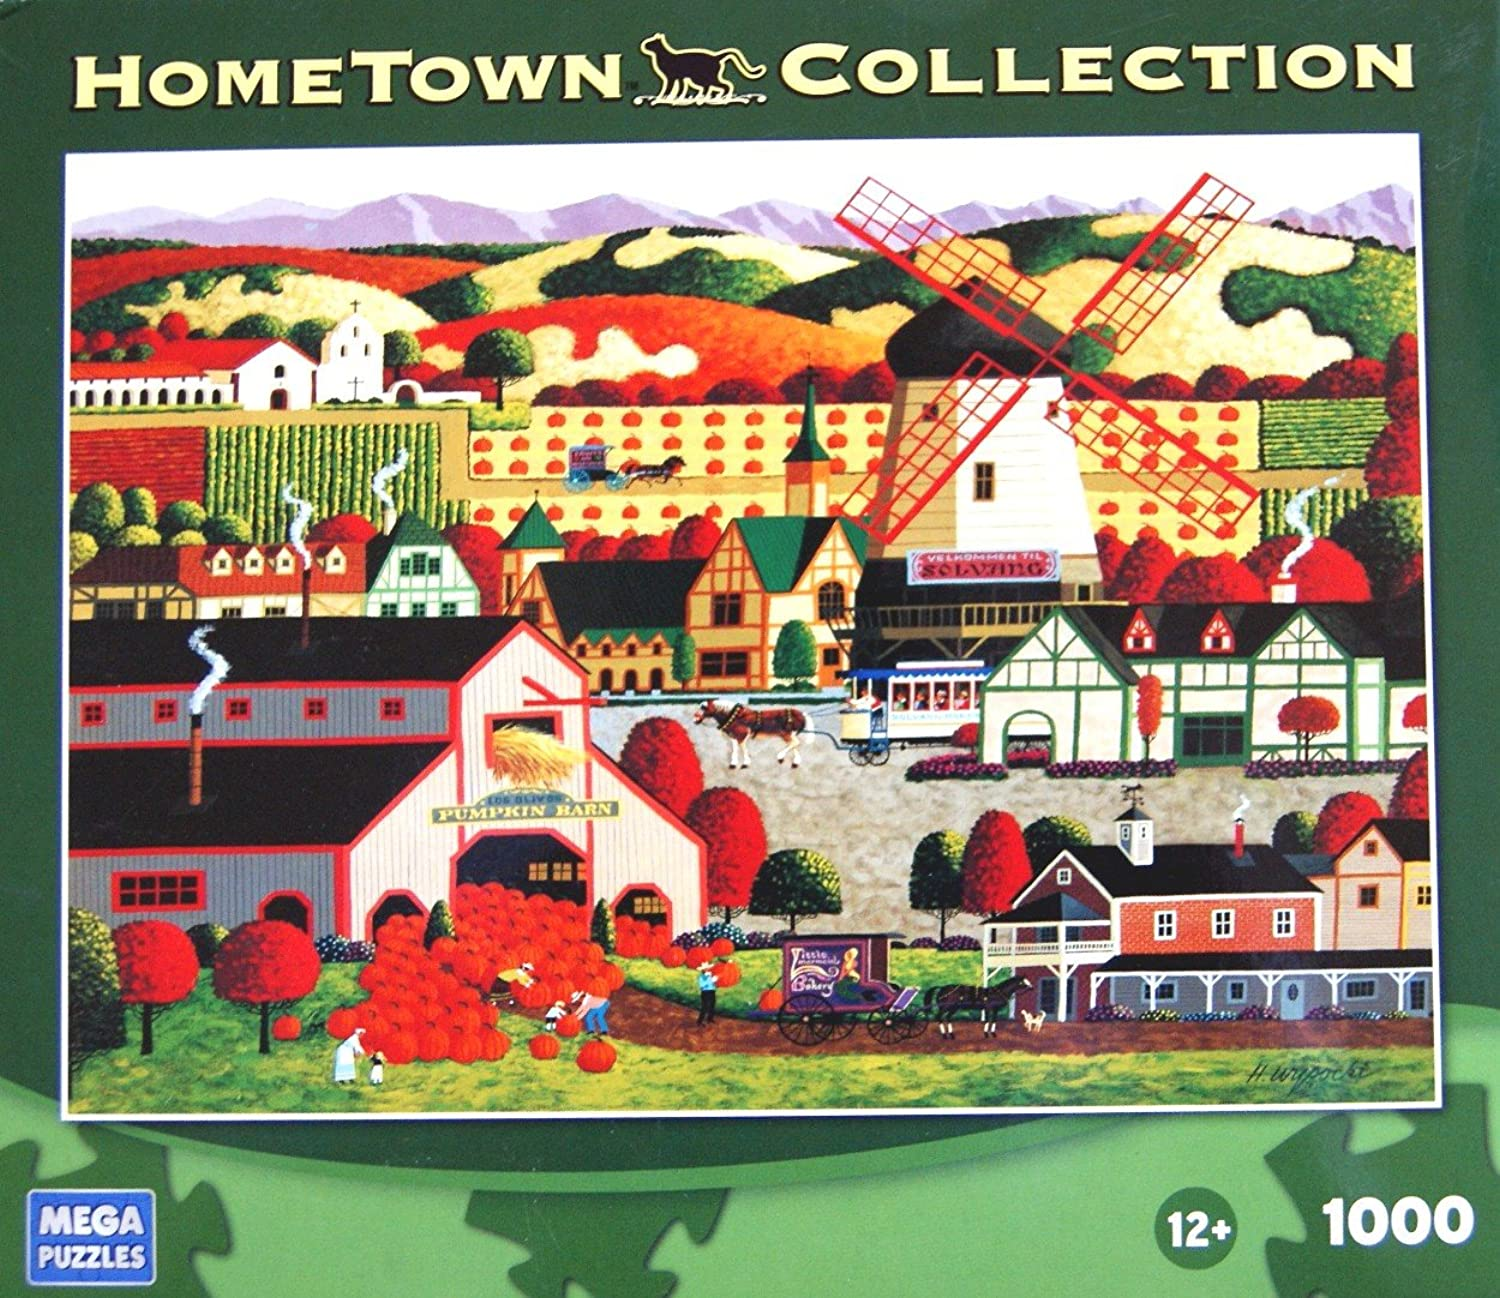 Hometown Collection 1000 Mega Puzzle ; Solvang